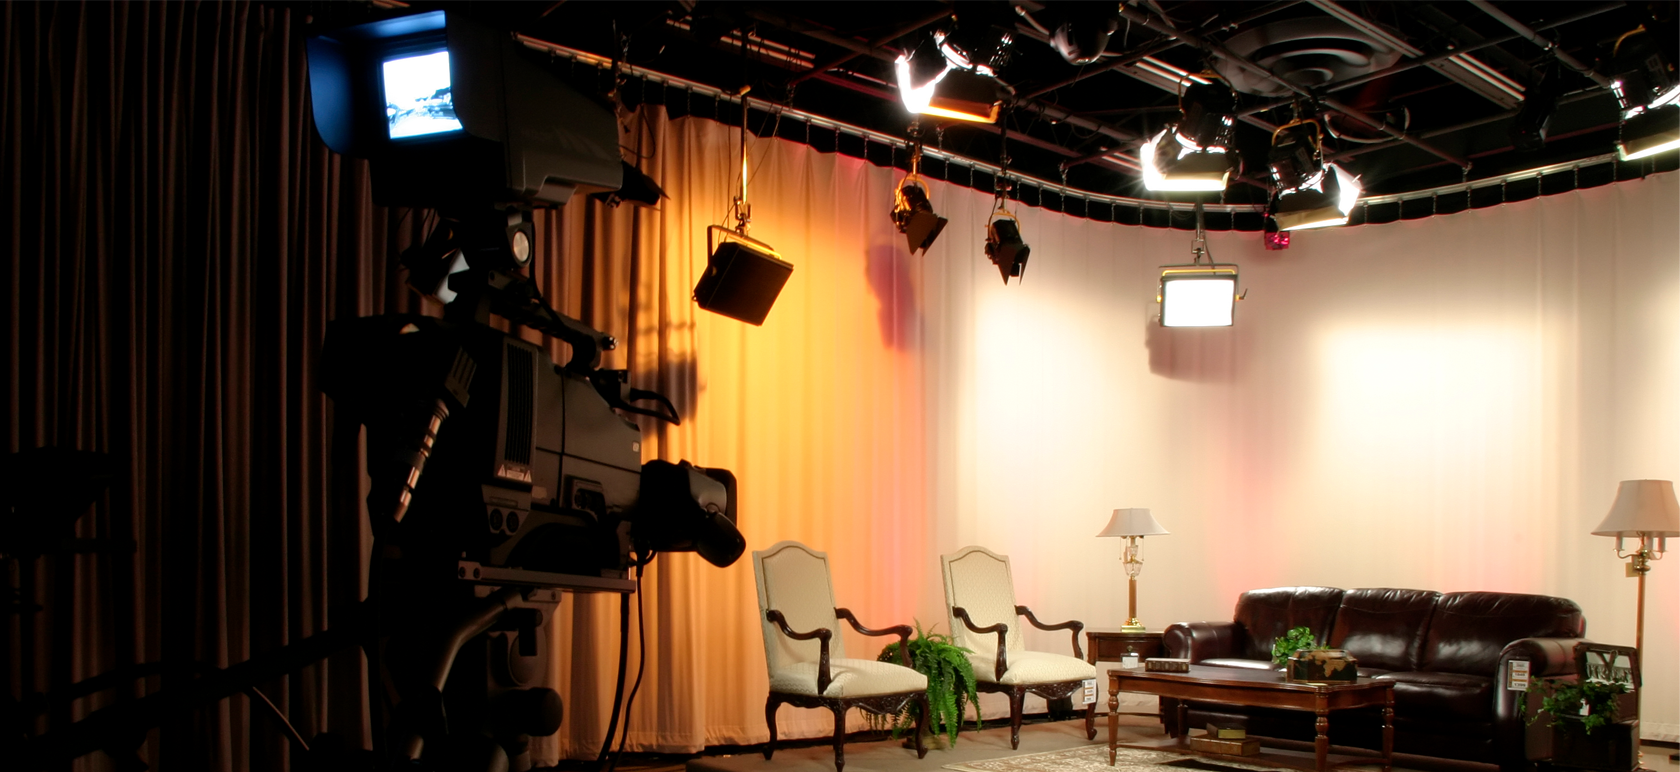 Smart Connected Lighting Takes the Stage at the Movie Production Studio